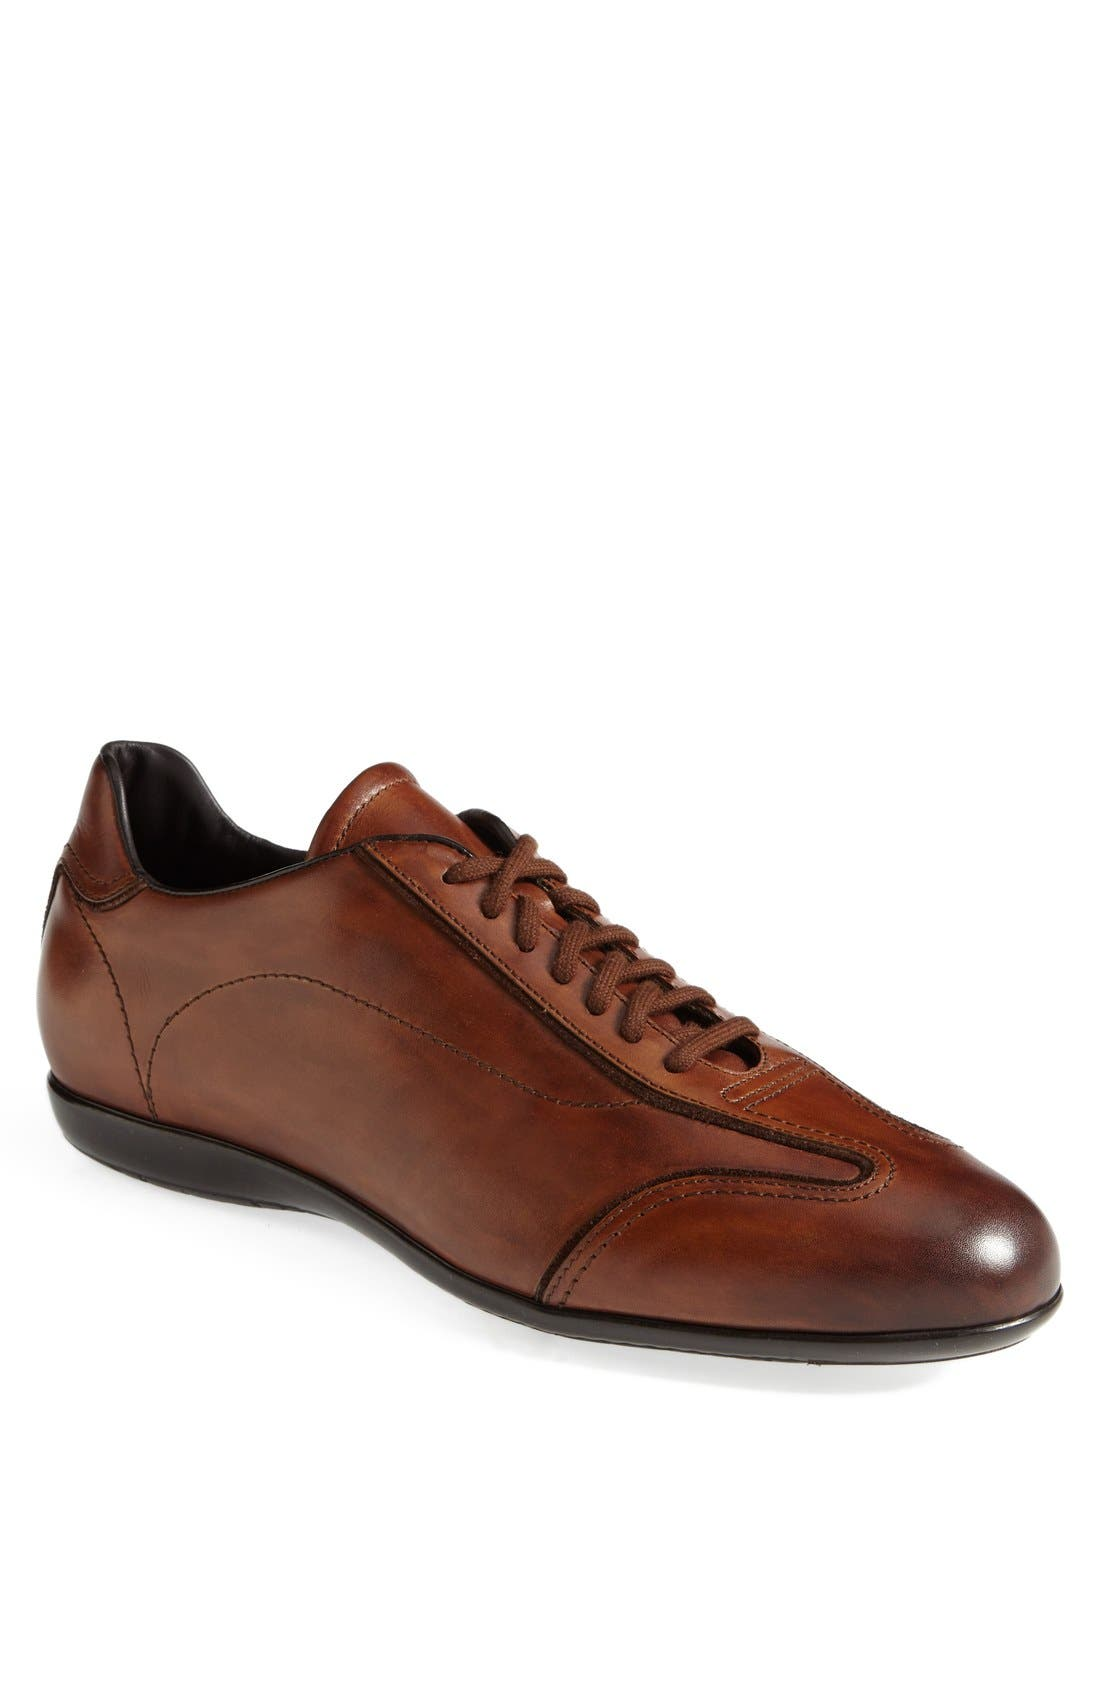 Alternate Image 1 Selected - Santoni 'Himalaya 2' Sneaker (Online Only) (Men)